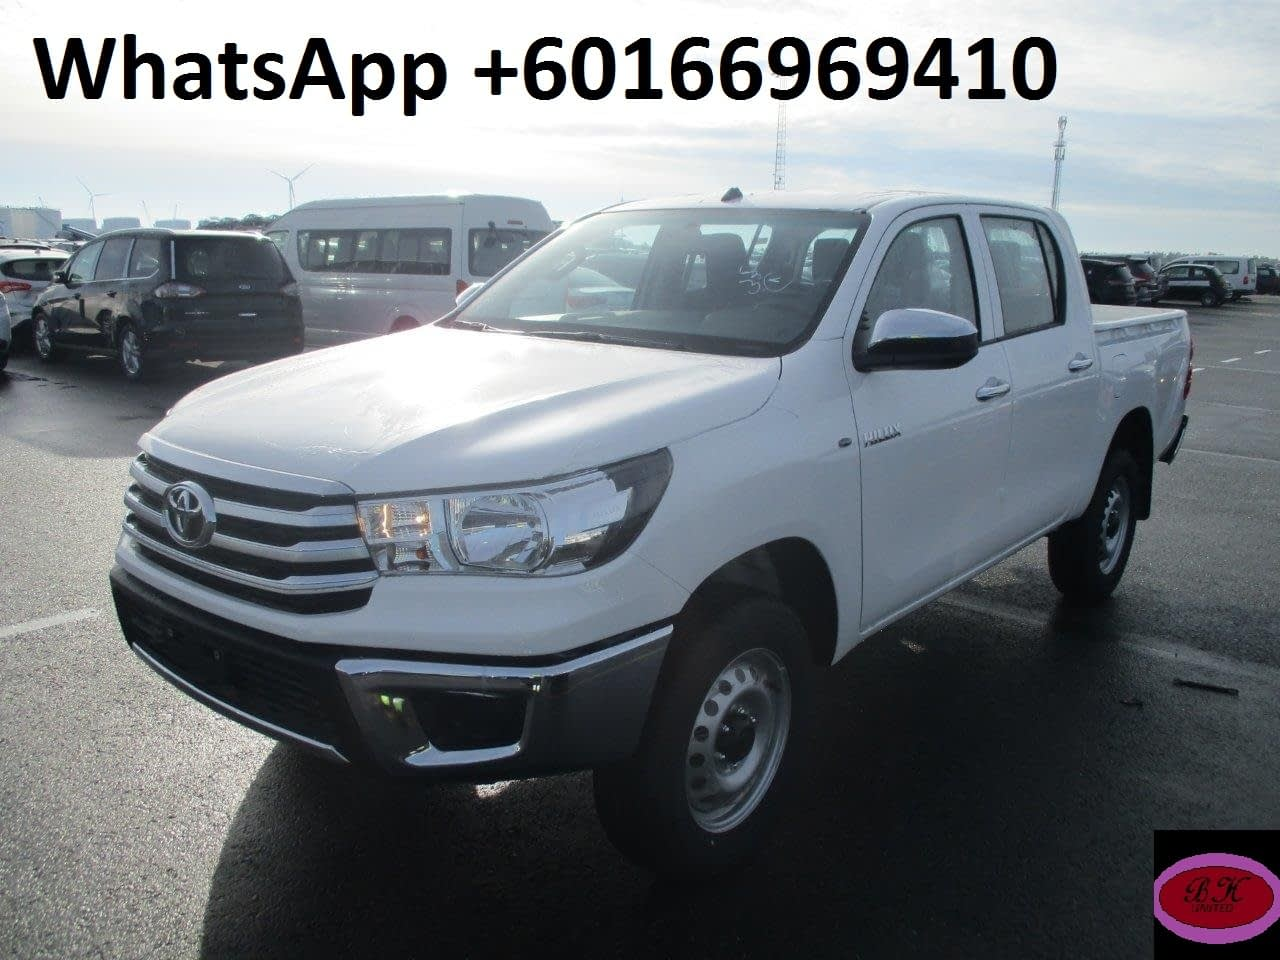 SlightlyUsedTOYOTAHILUX